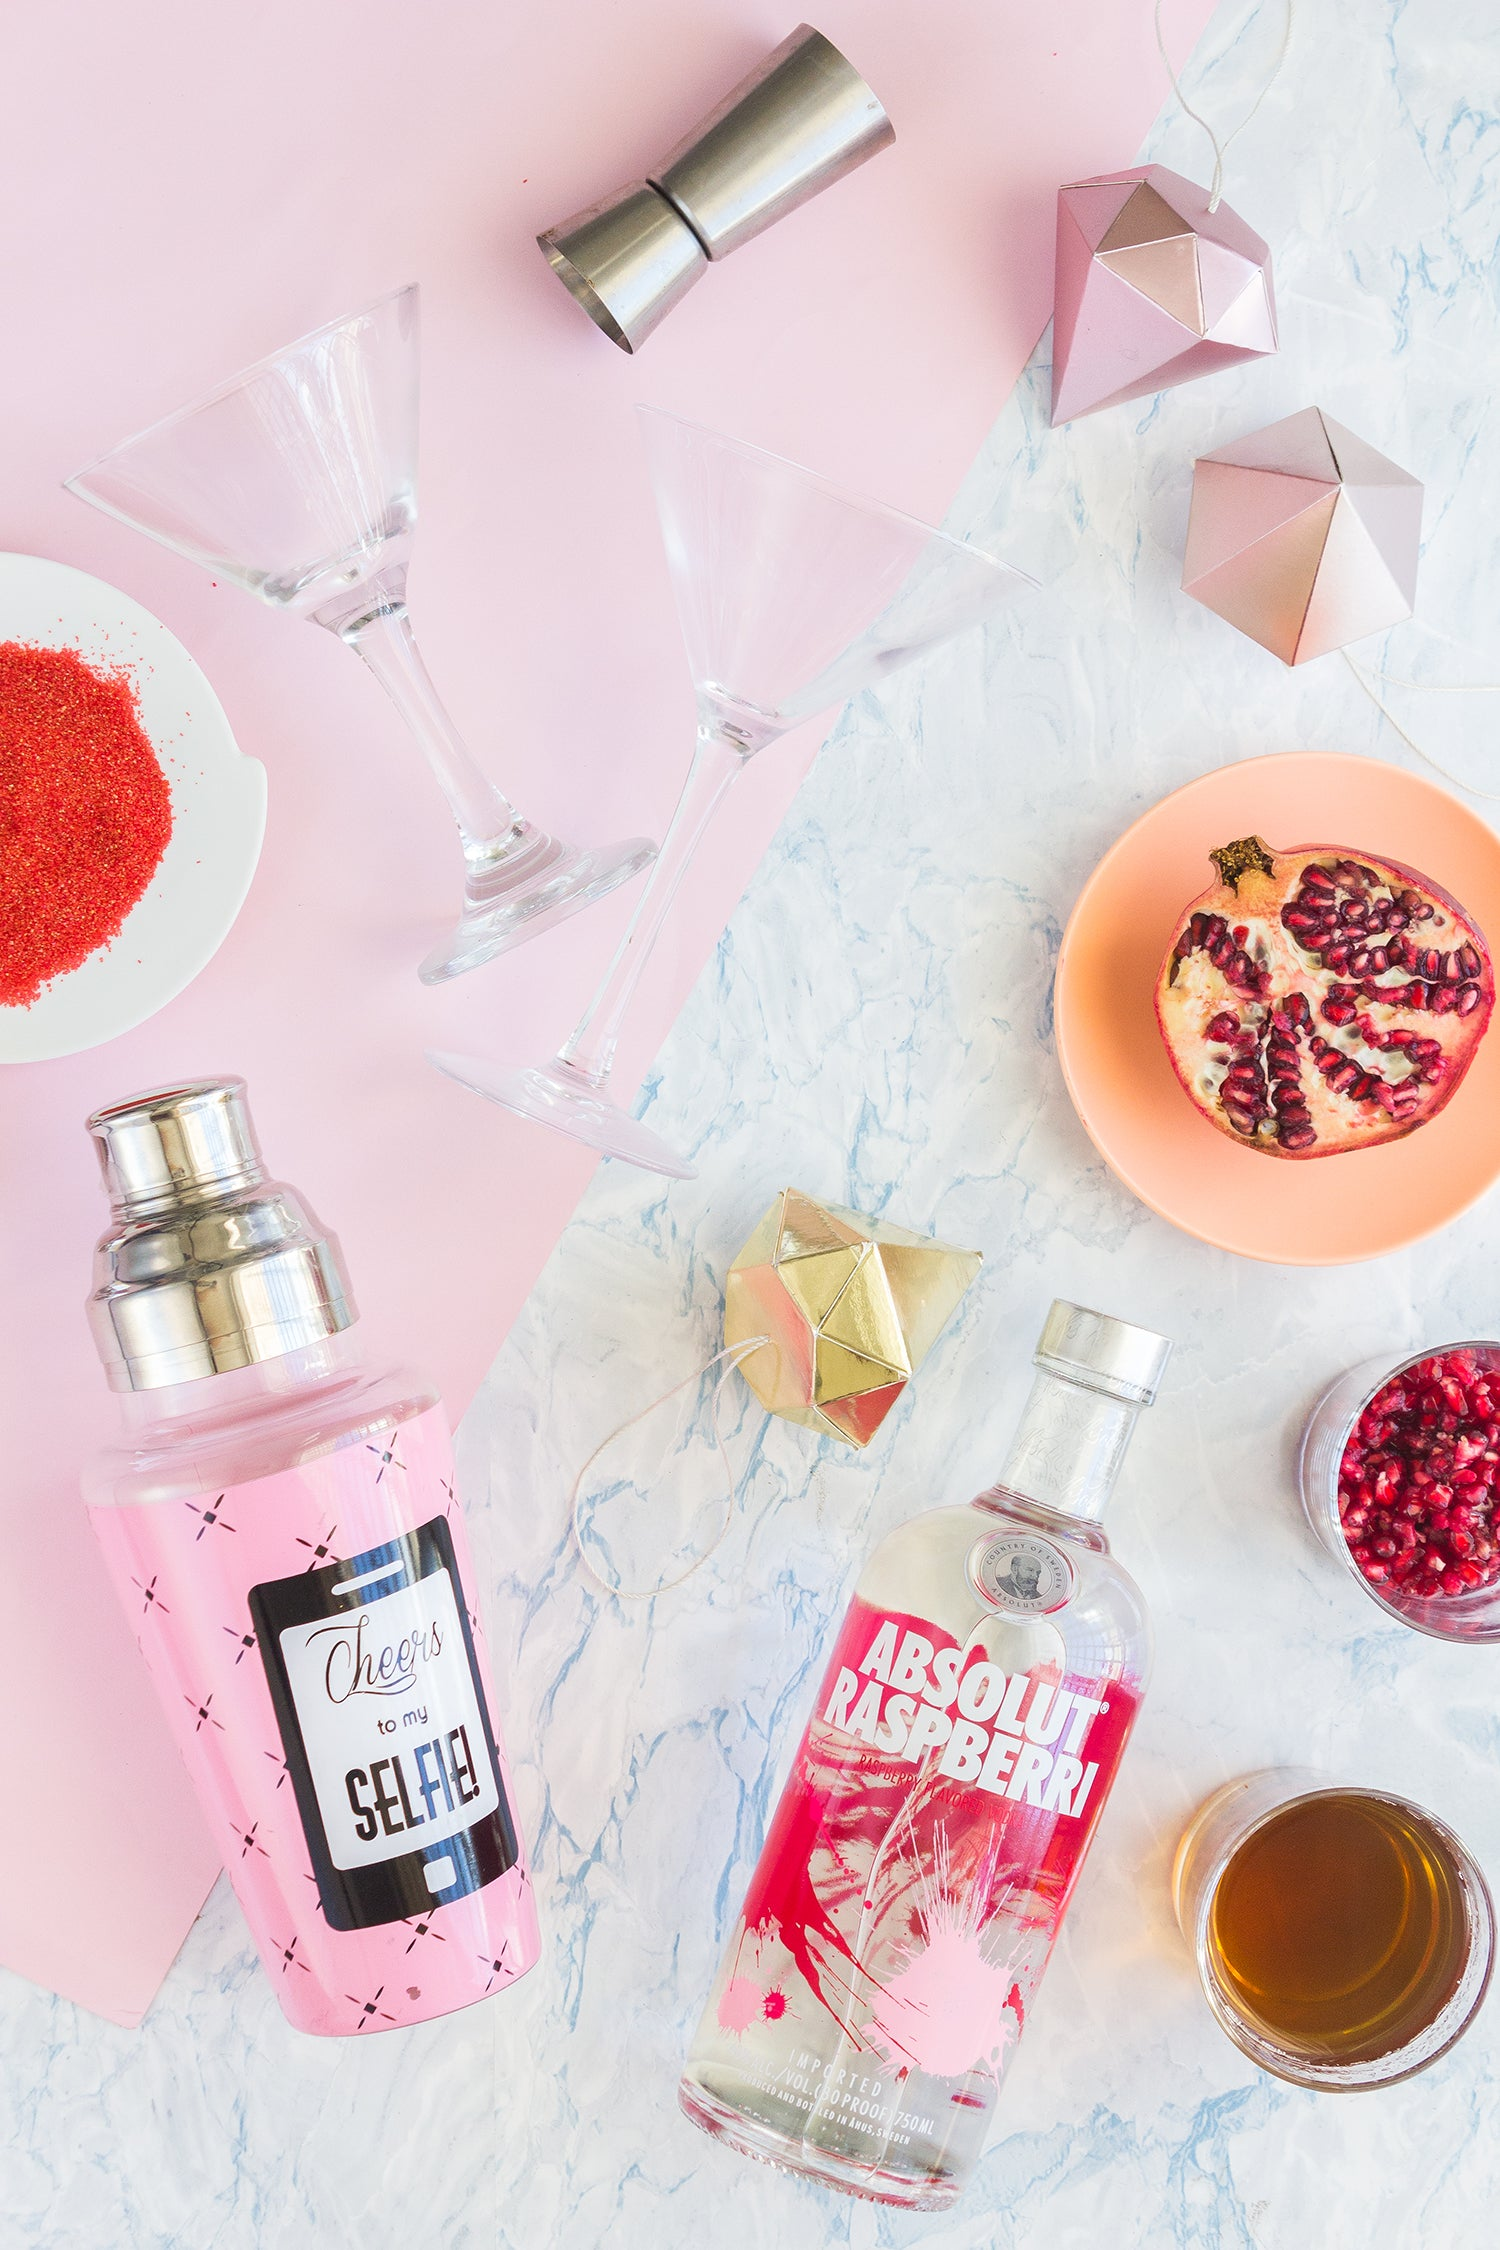 Ingredients for a delicious holiday cosmopolitan.